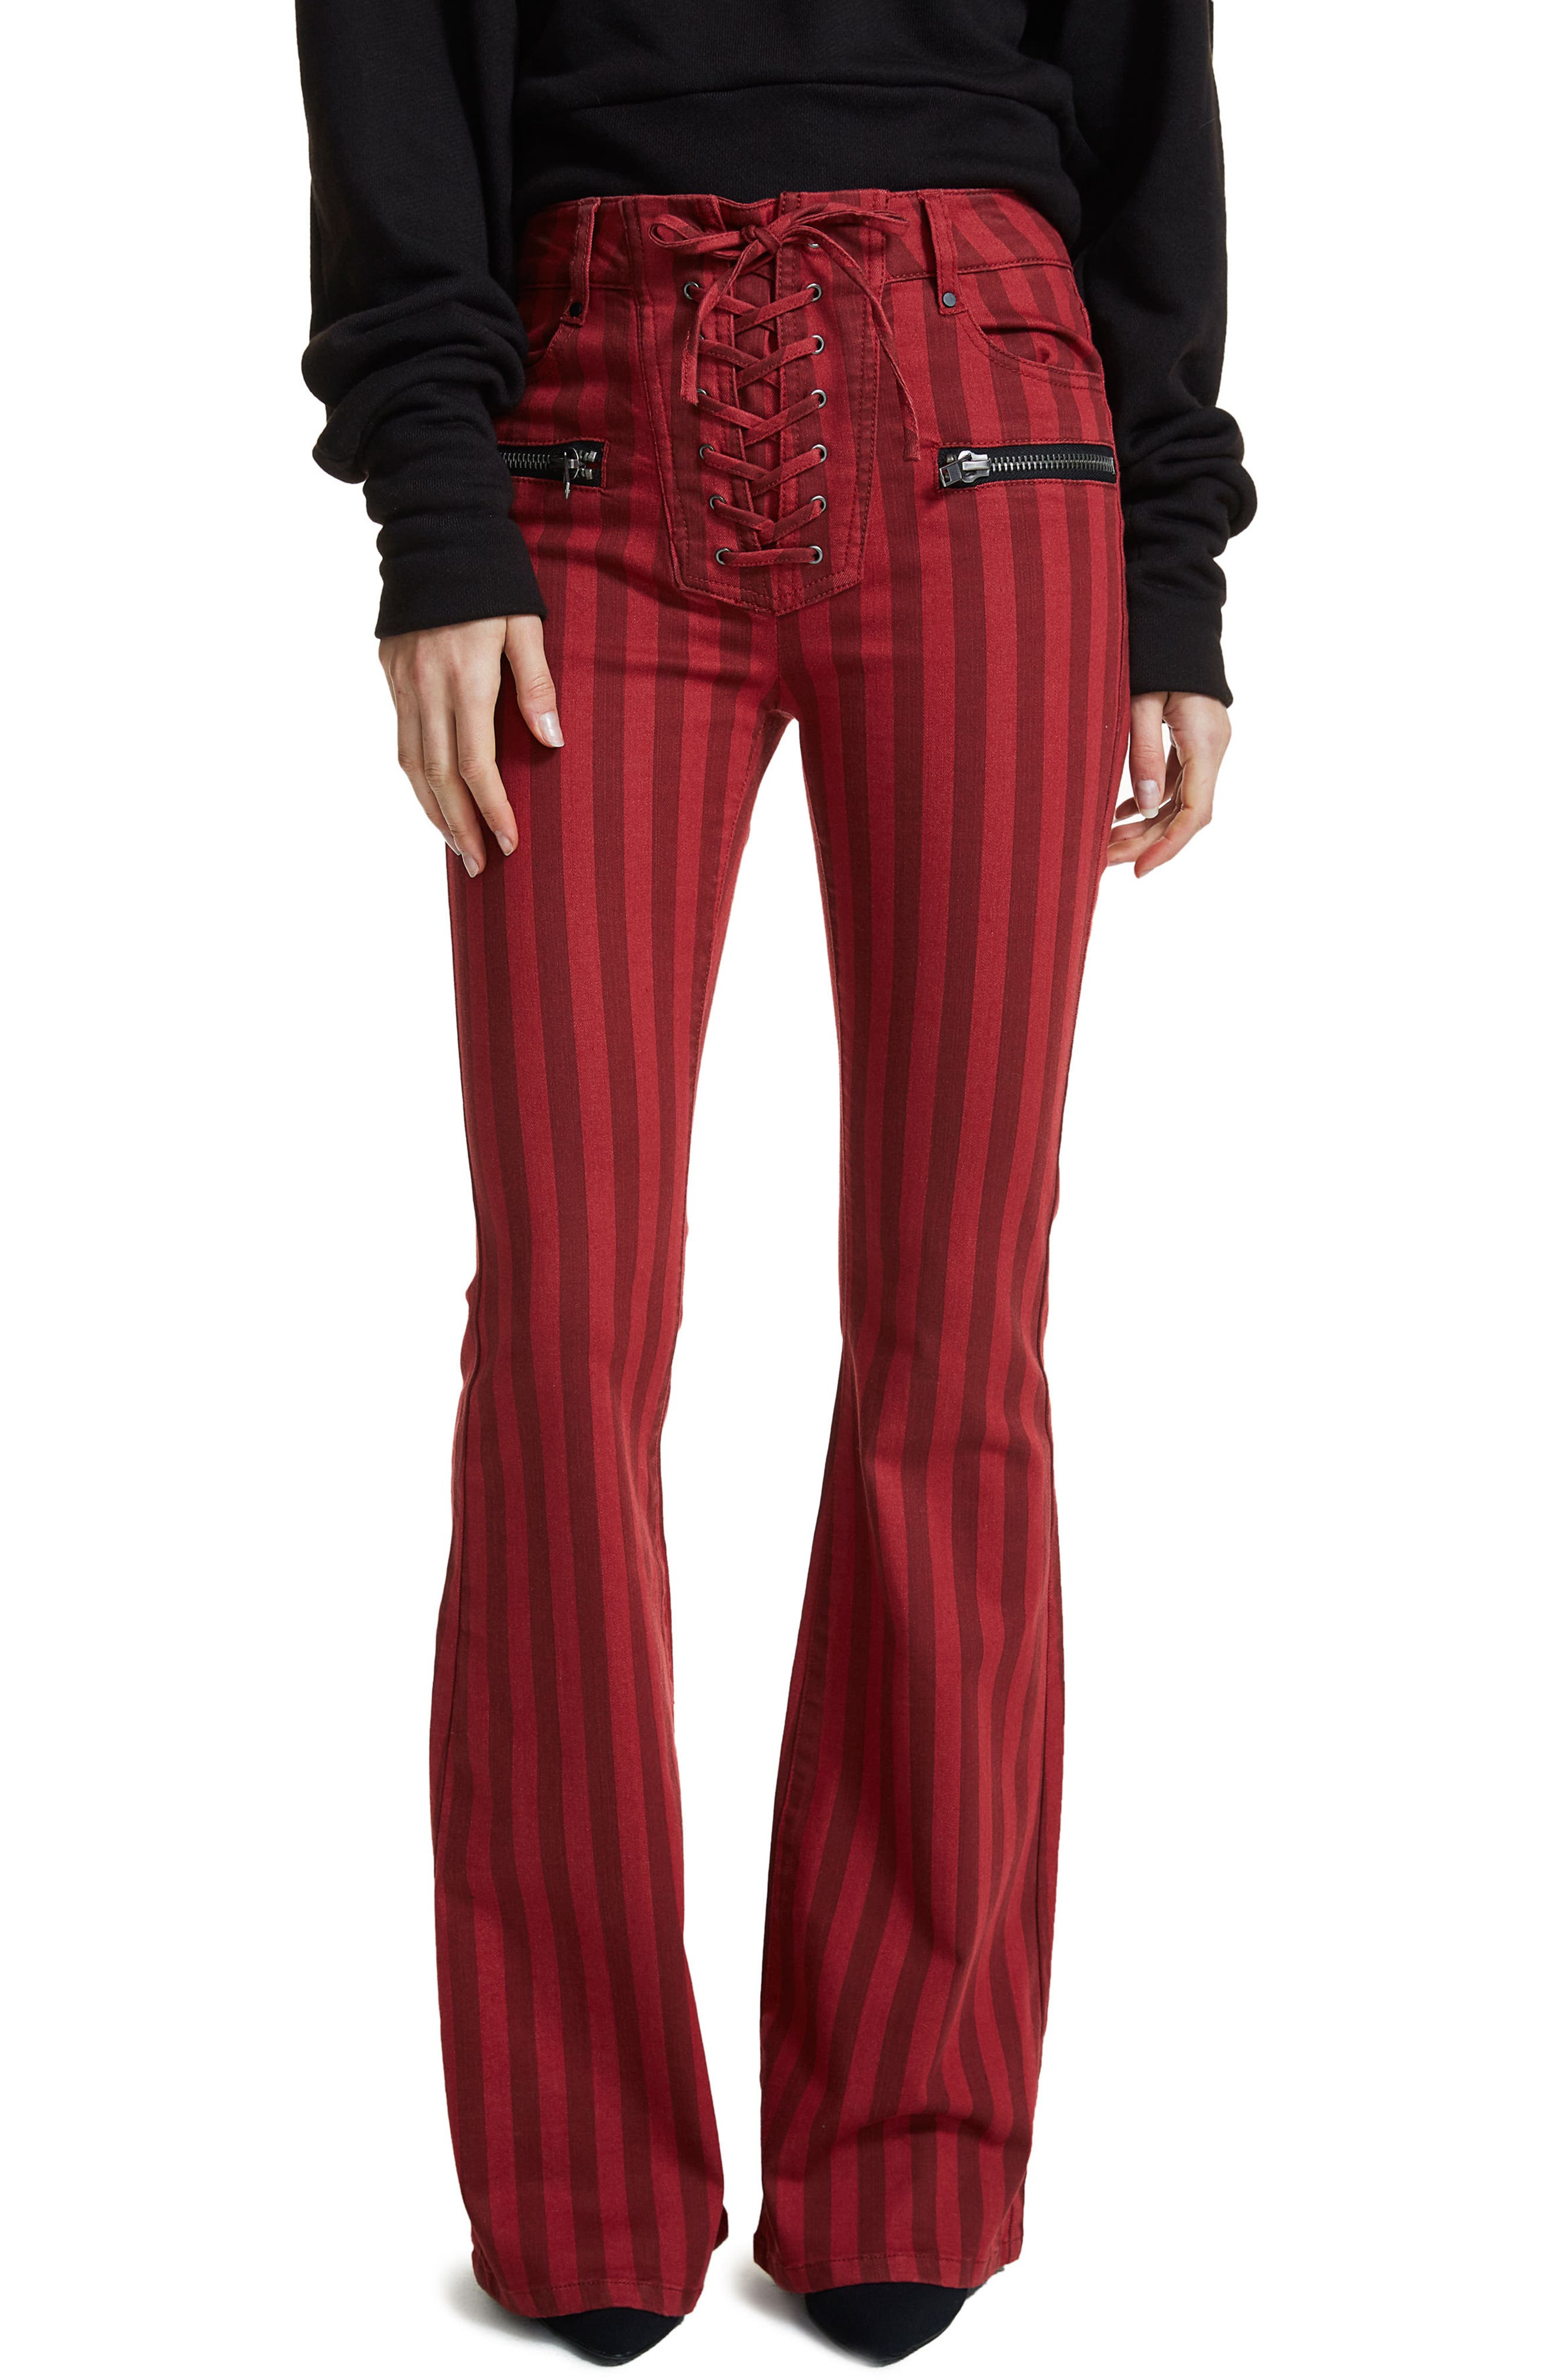 Main Image - AFRM Claire Lace-Up Flare Leg Jeans (Red Stripe)